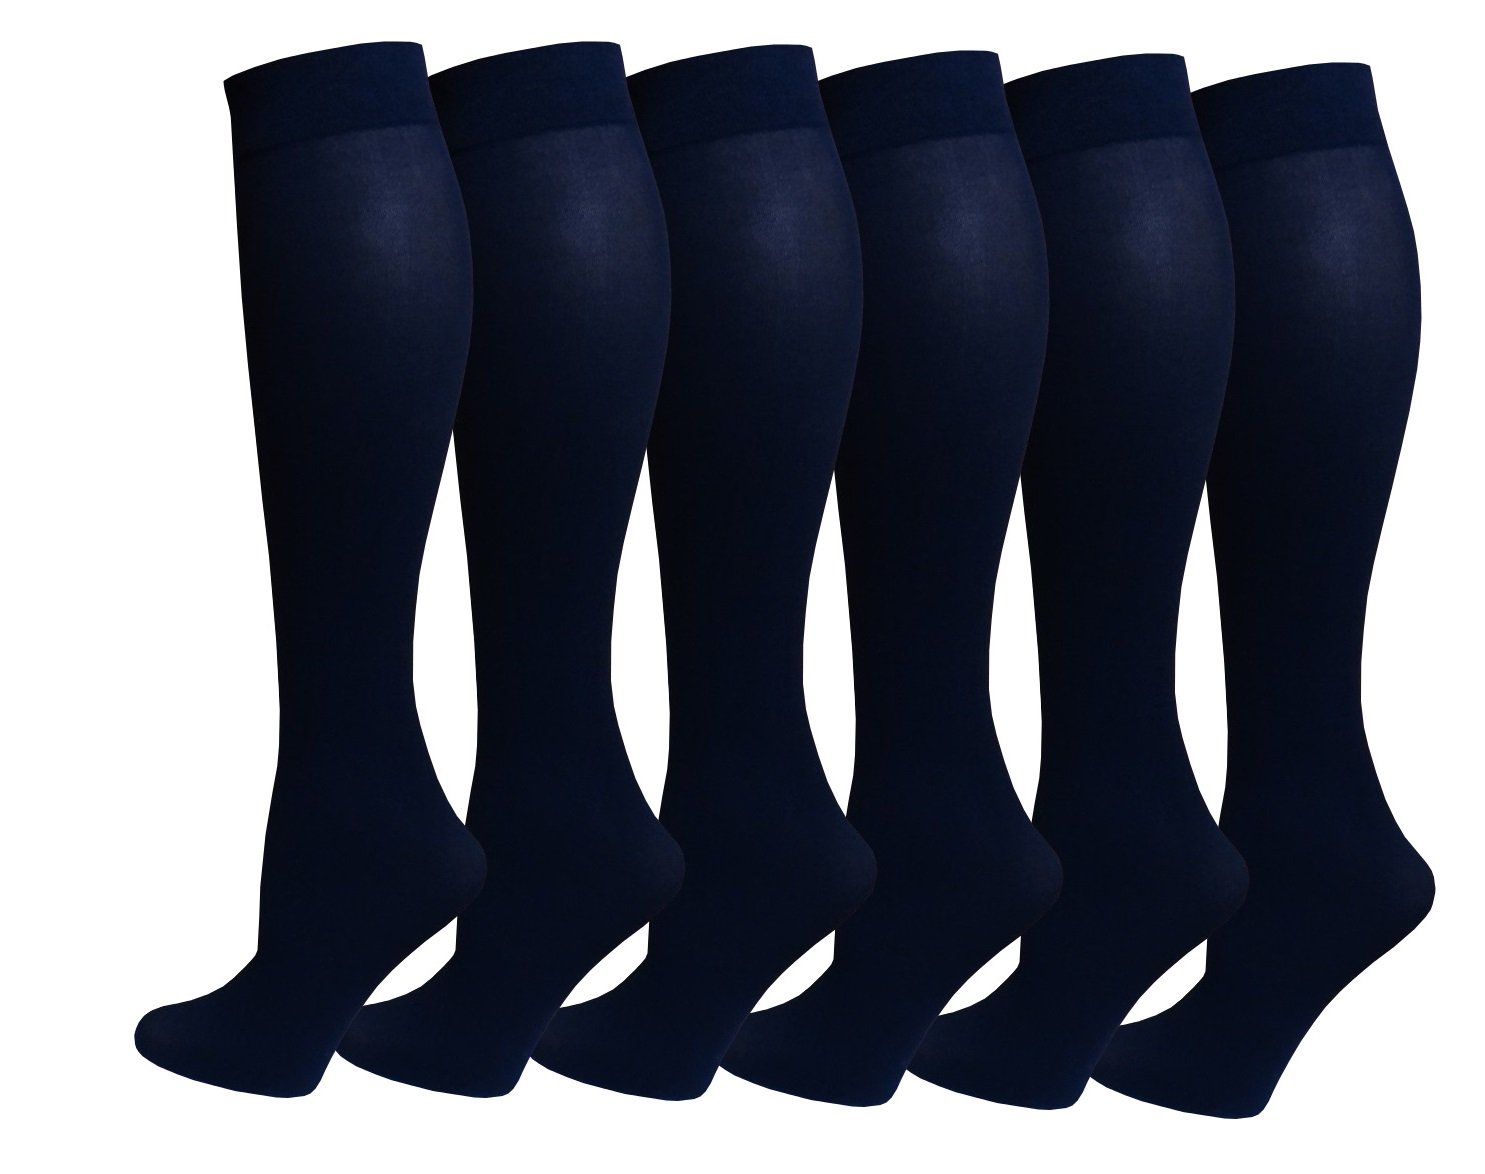 6 Pairs Women's Opaque Spandex Trouser Knee High Socks Queen Size 10-13